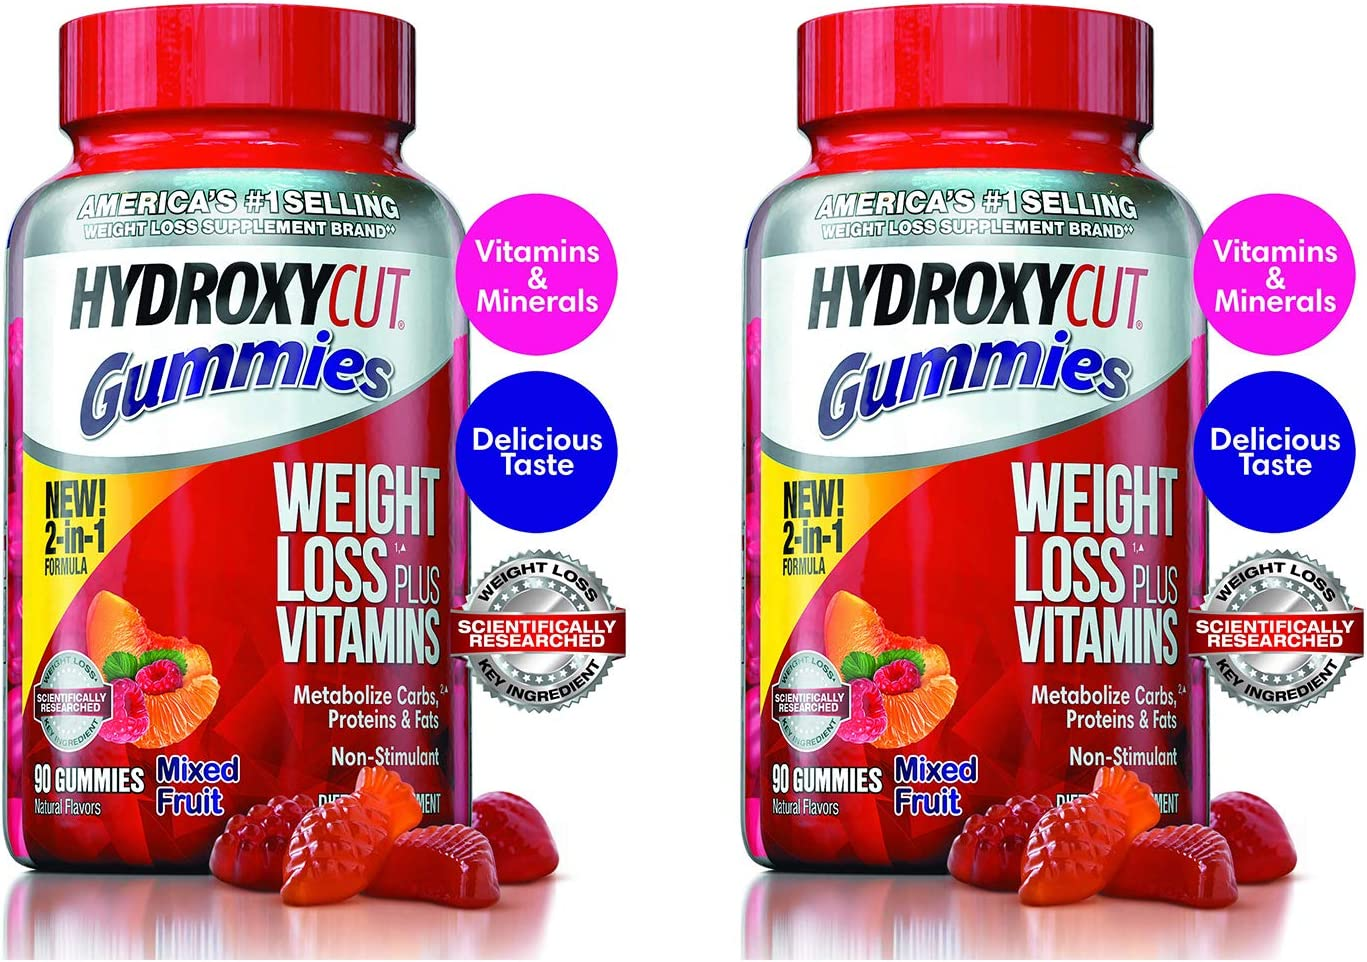 Hydroxycut Non-Stimulant Weight Loss Mixed Fruit Gummies, 90 Count - 2 Pack